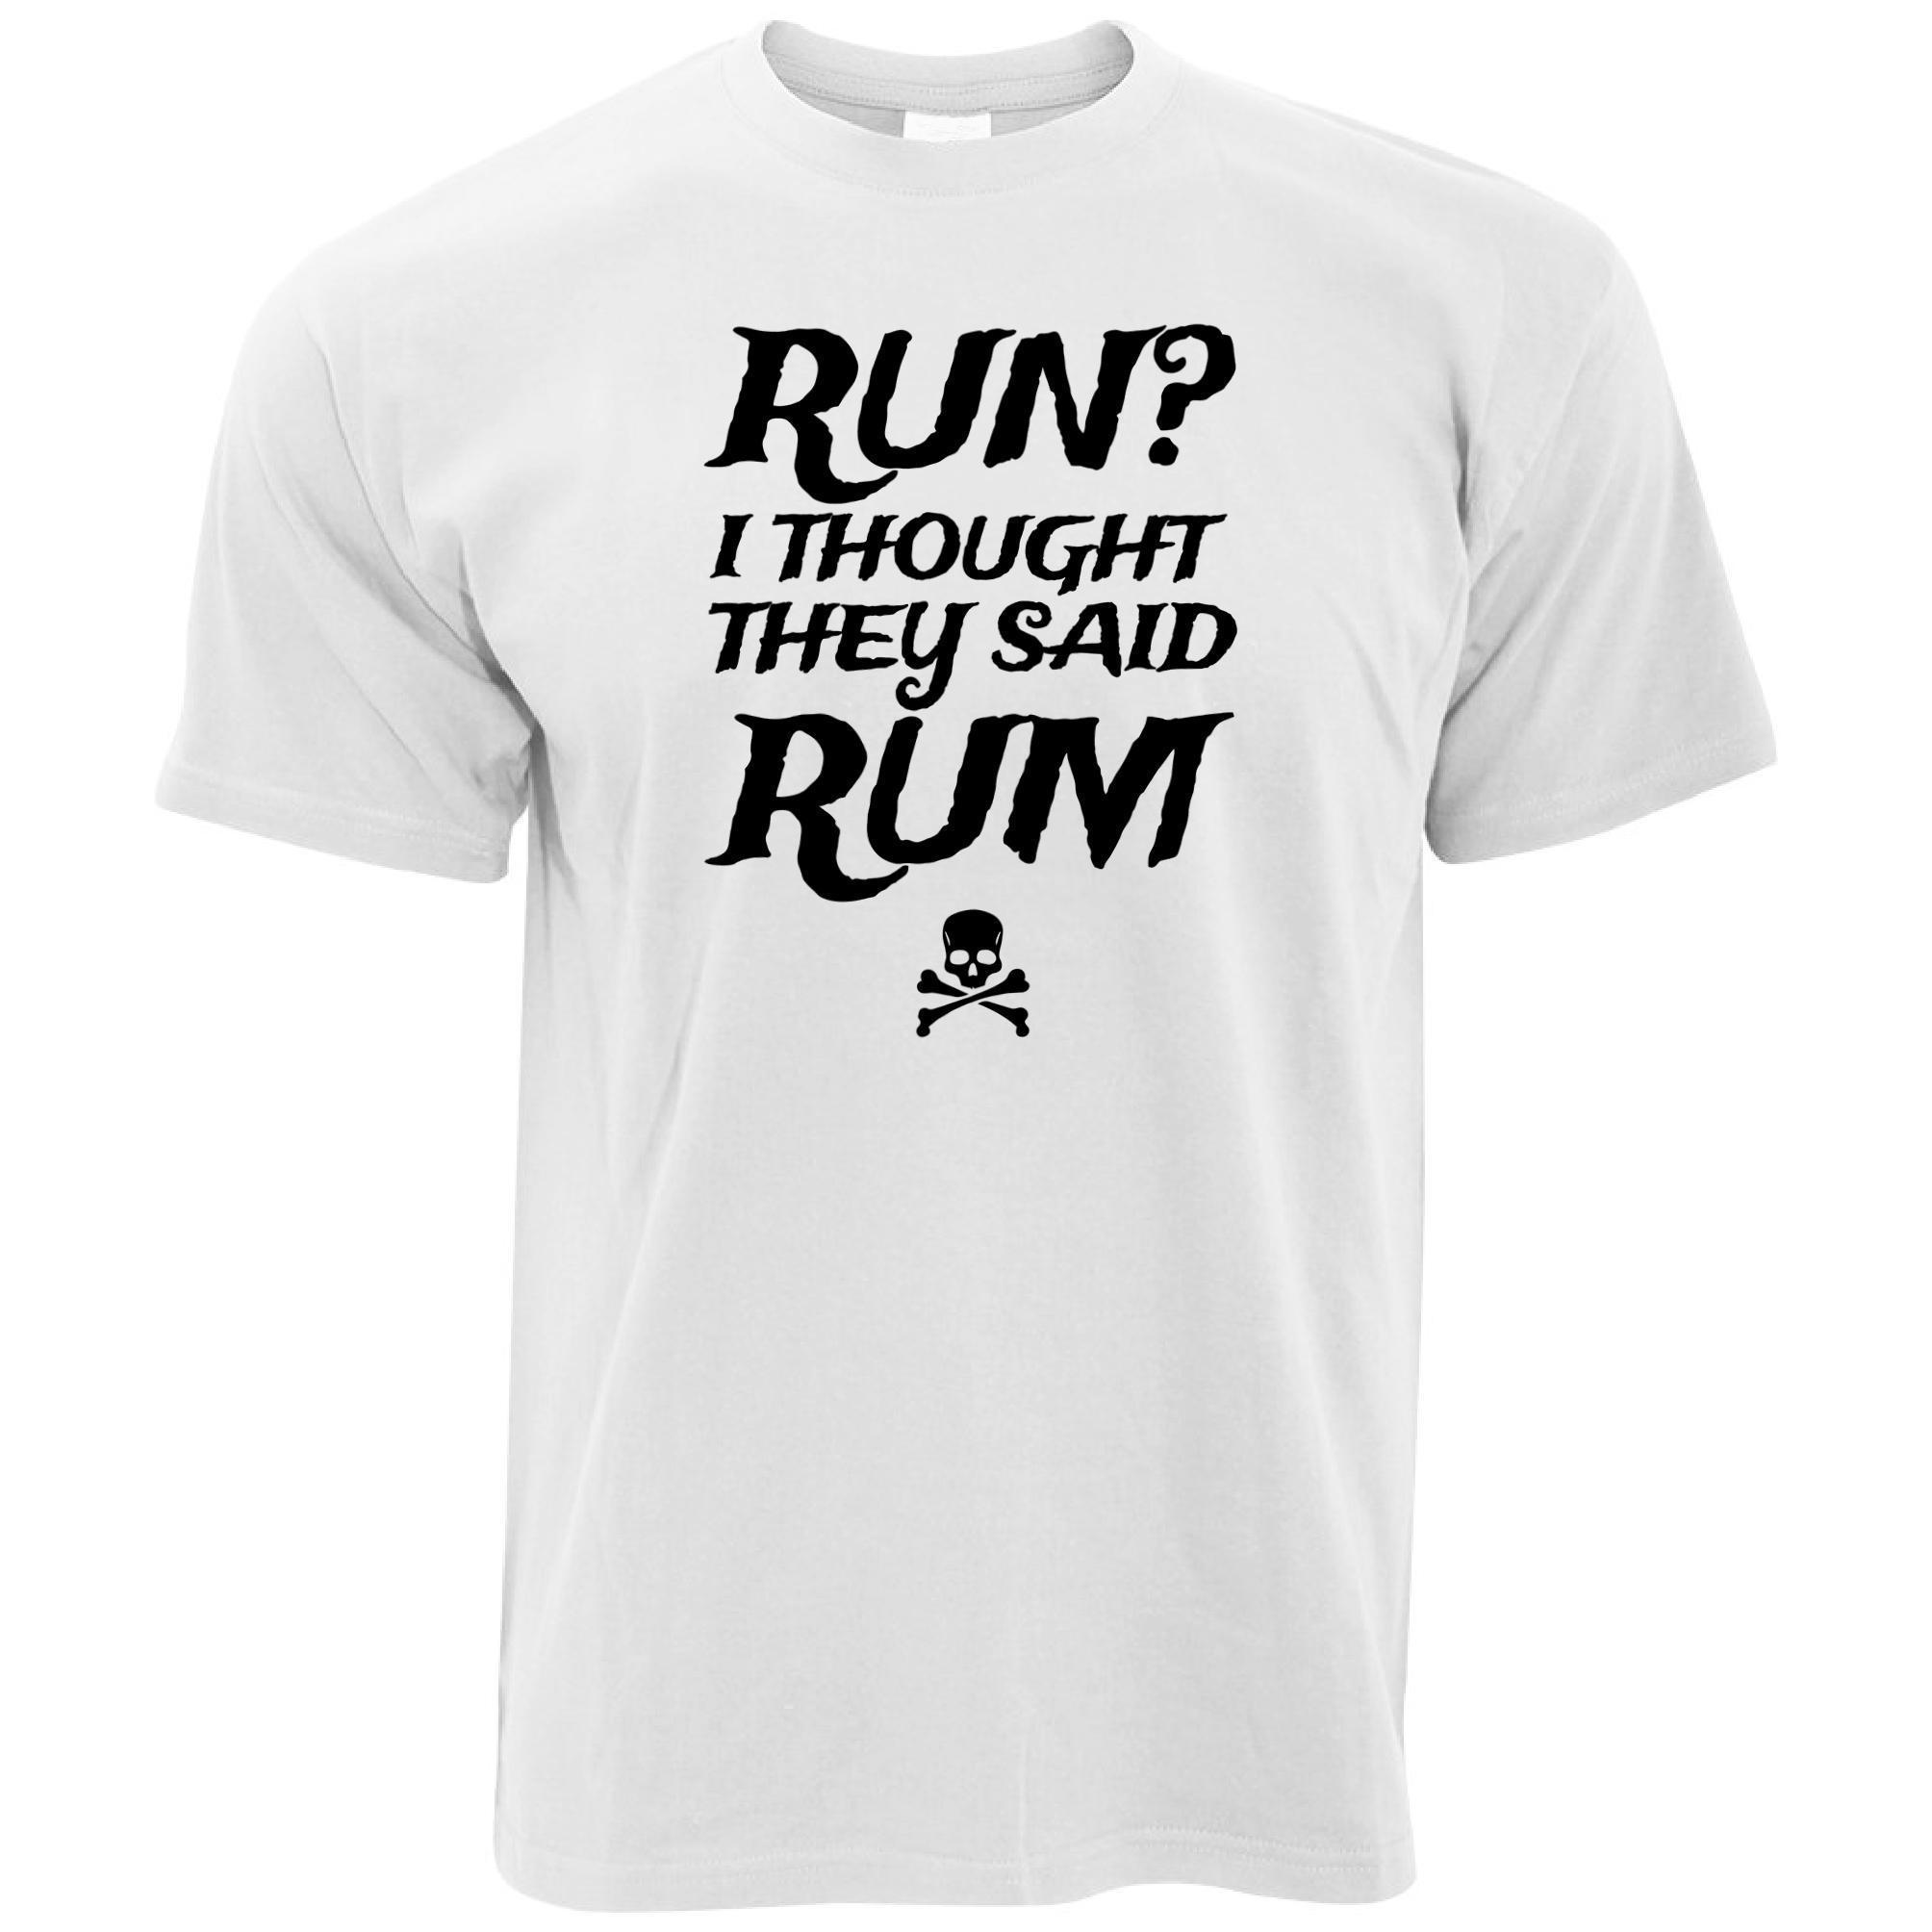 5e5f0611 Run? Mens T Shirt I Thought You Said Rum! Pirate Funny Slogan Cool Design  Pun Awesome T Shirts For Guys Cool Tee Shirt Designs From Lefan09, $14.67|  DHgate.